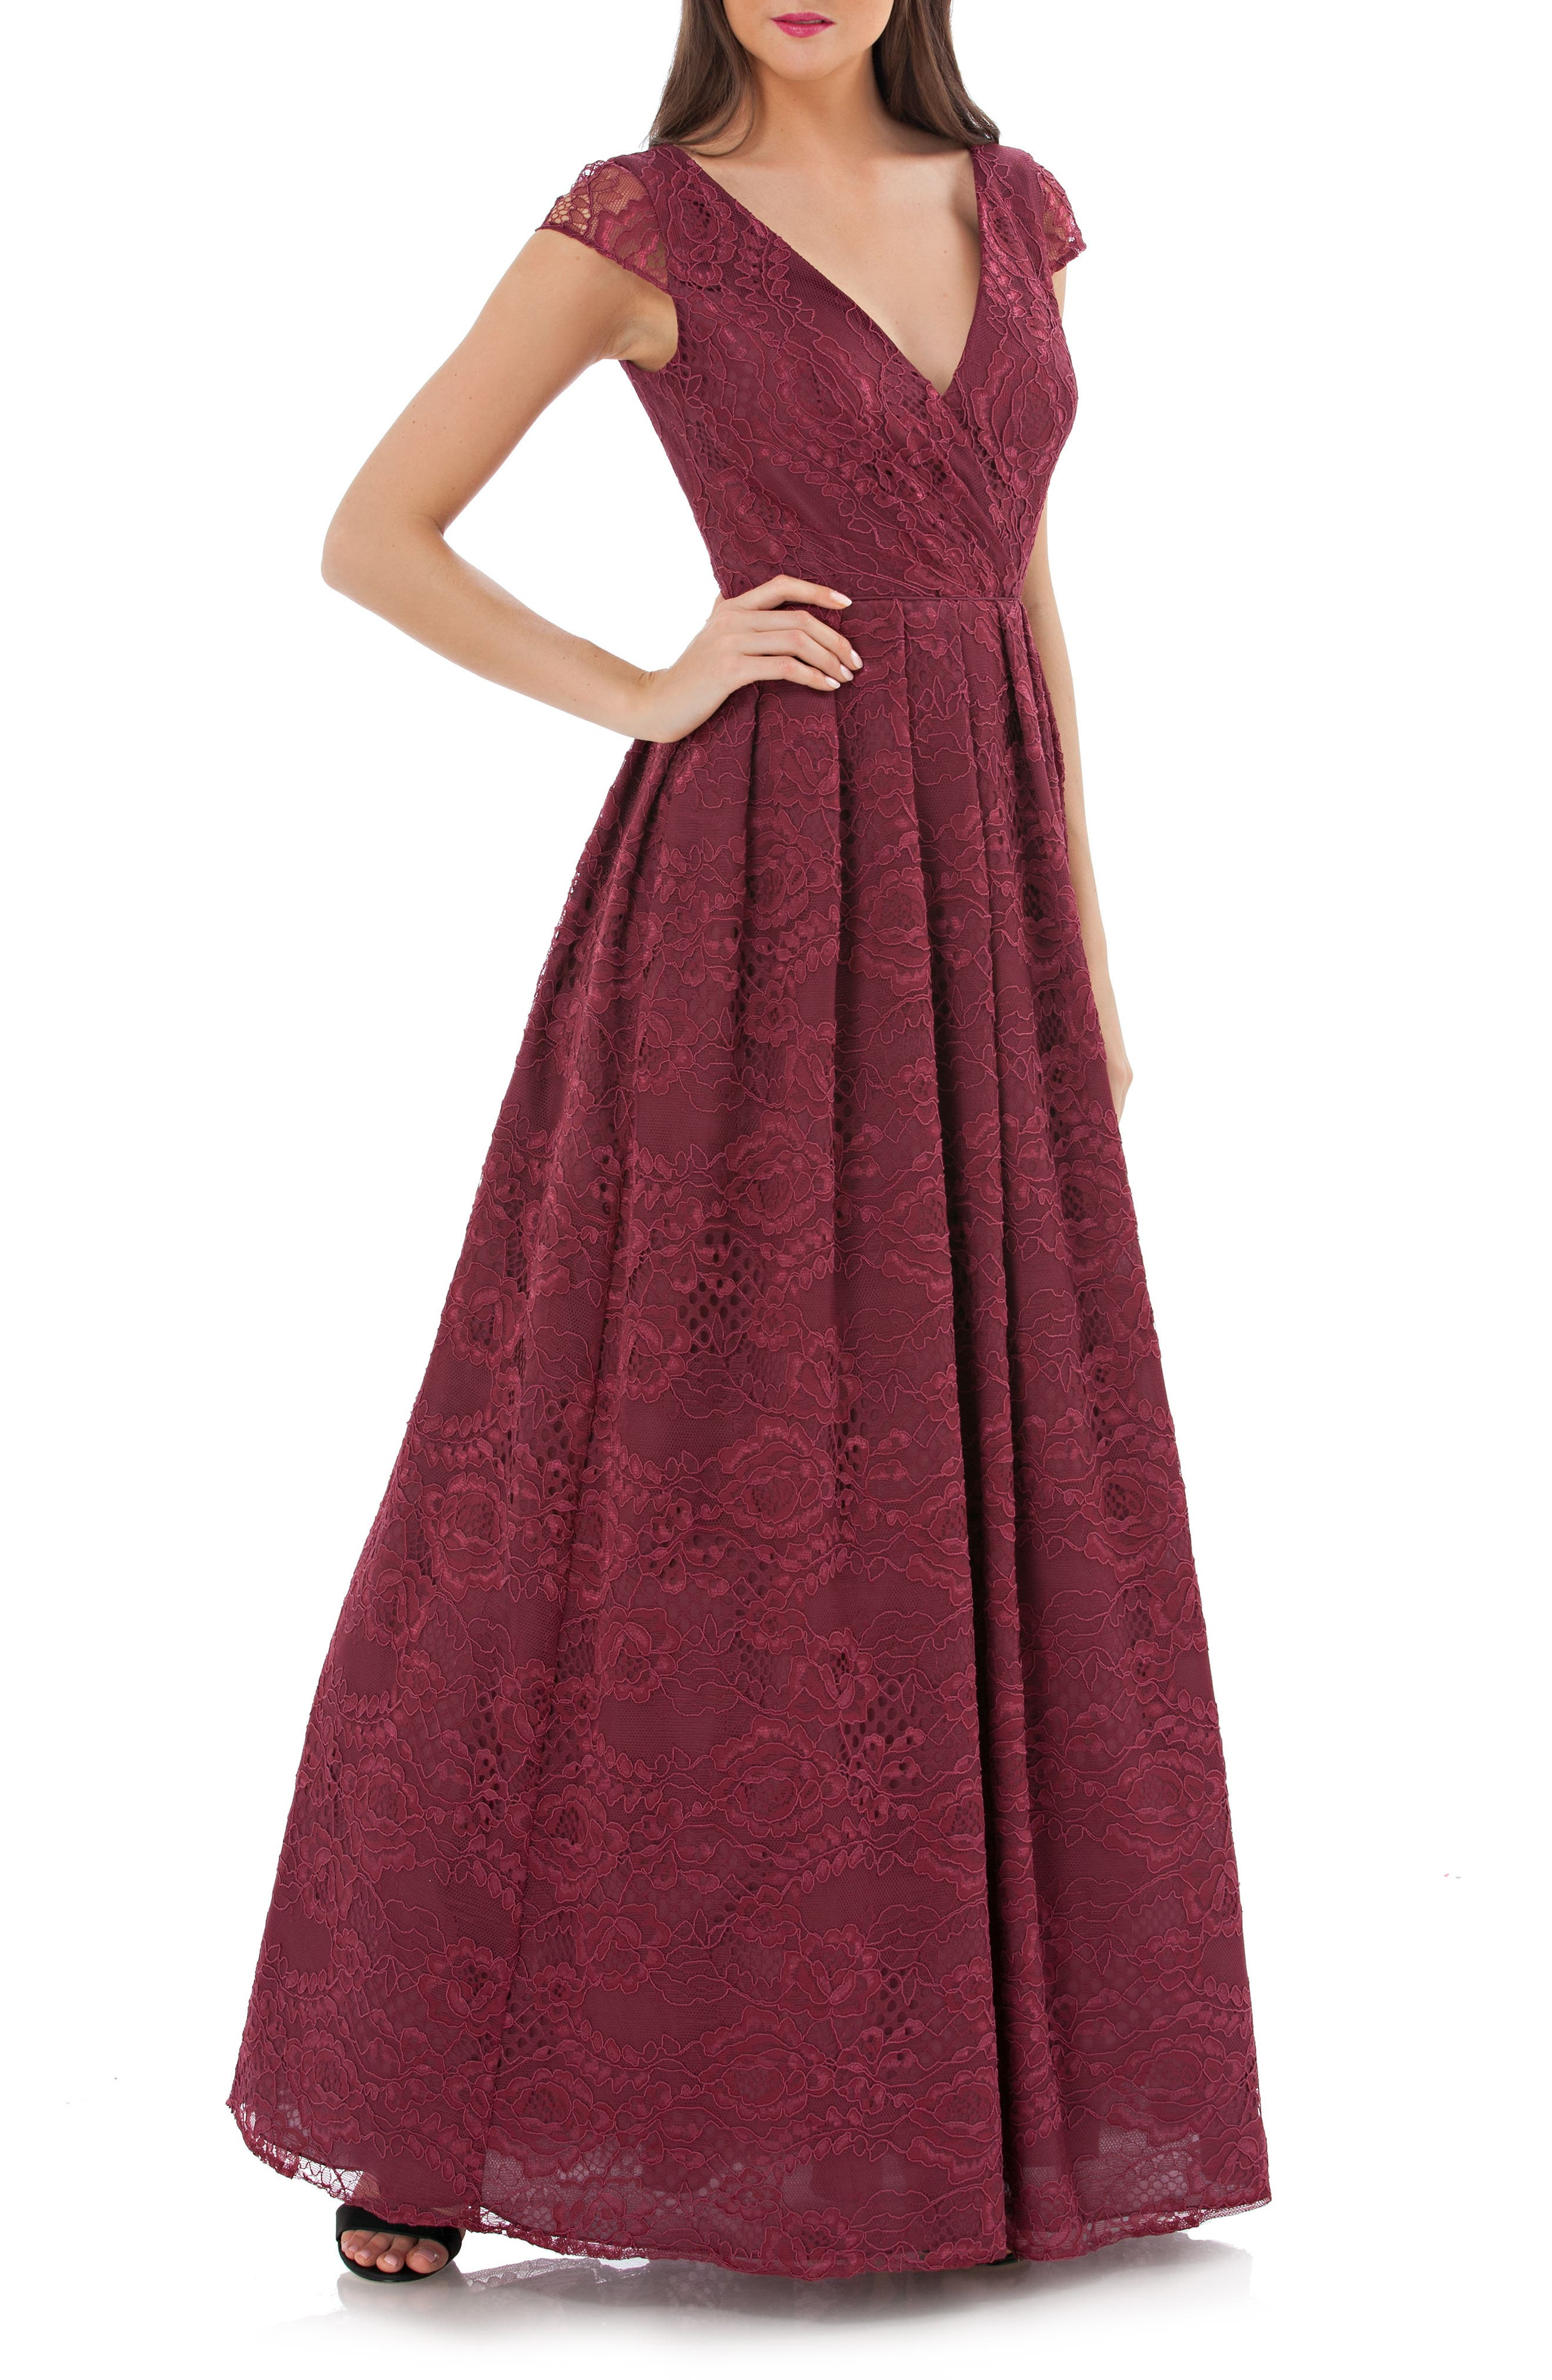 Embroidered Lace Ballgown,                             Main thumbnail 1, color,                             Wine